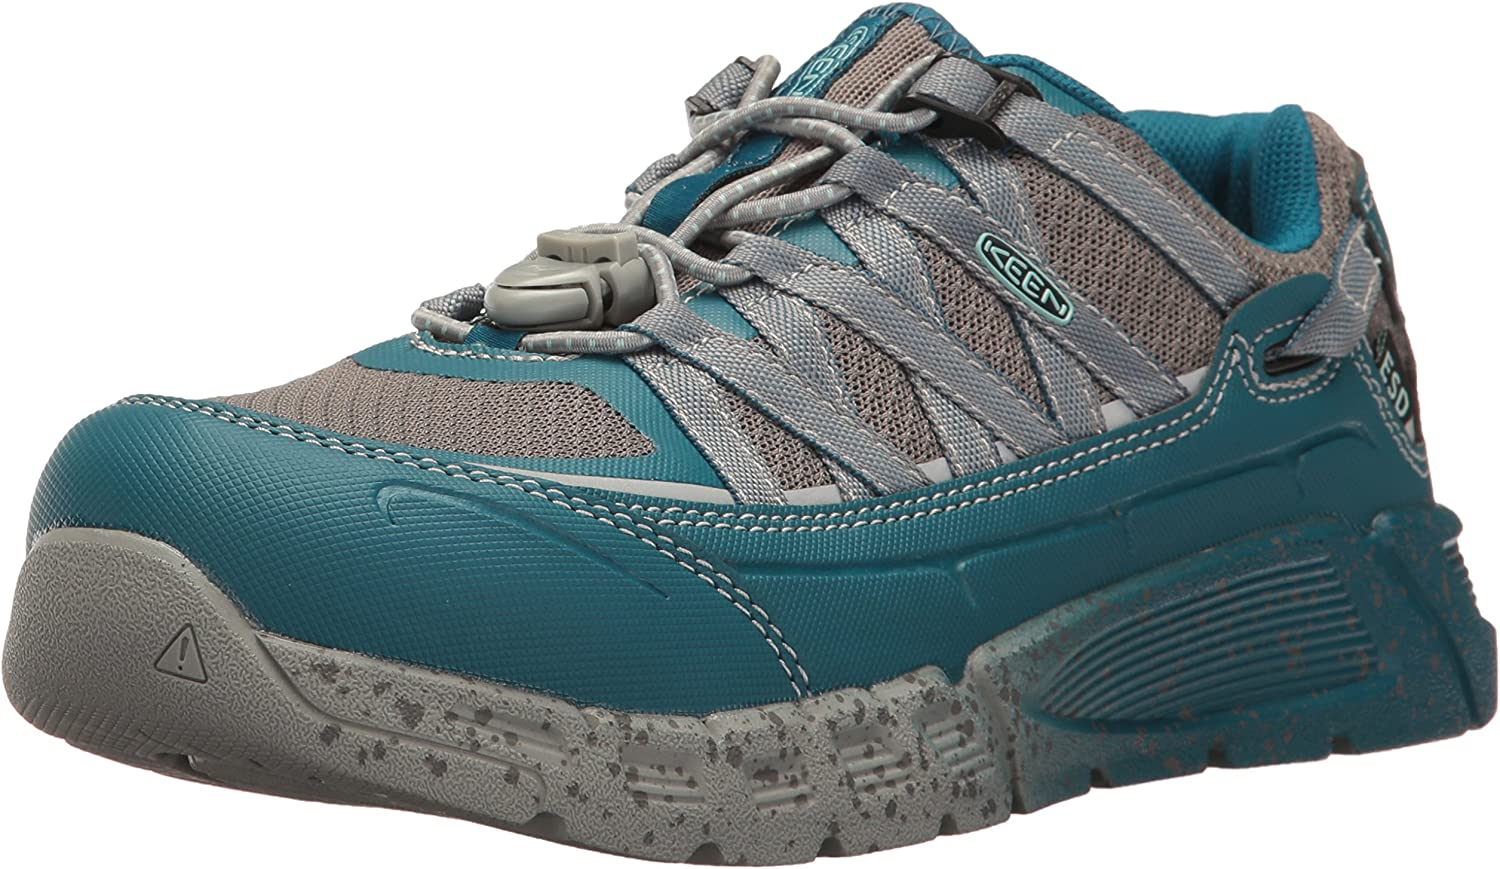 KEEN Utility Womens Asheville at ESD Industrial & Construction shoes